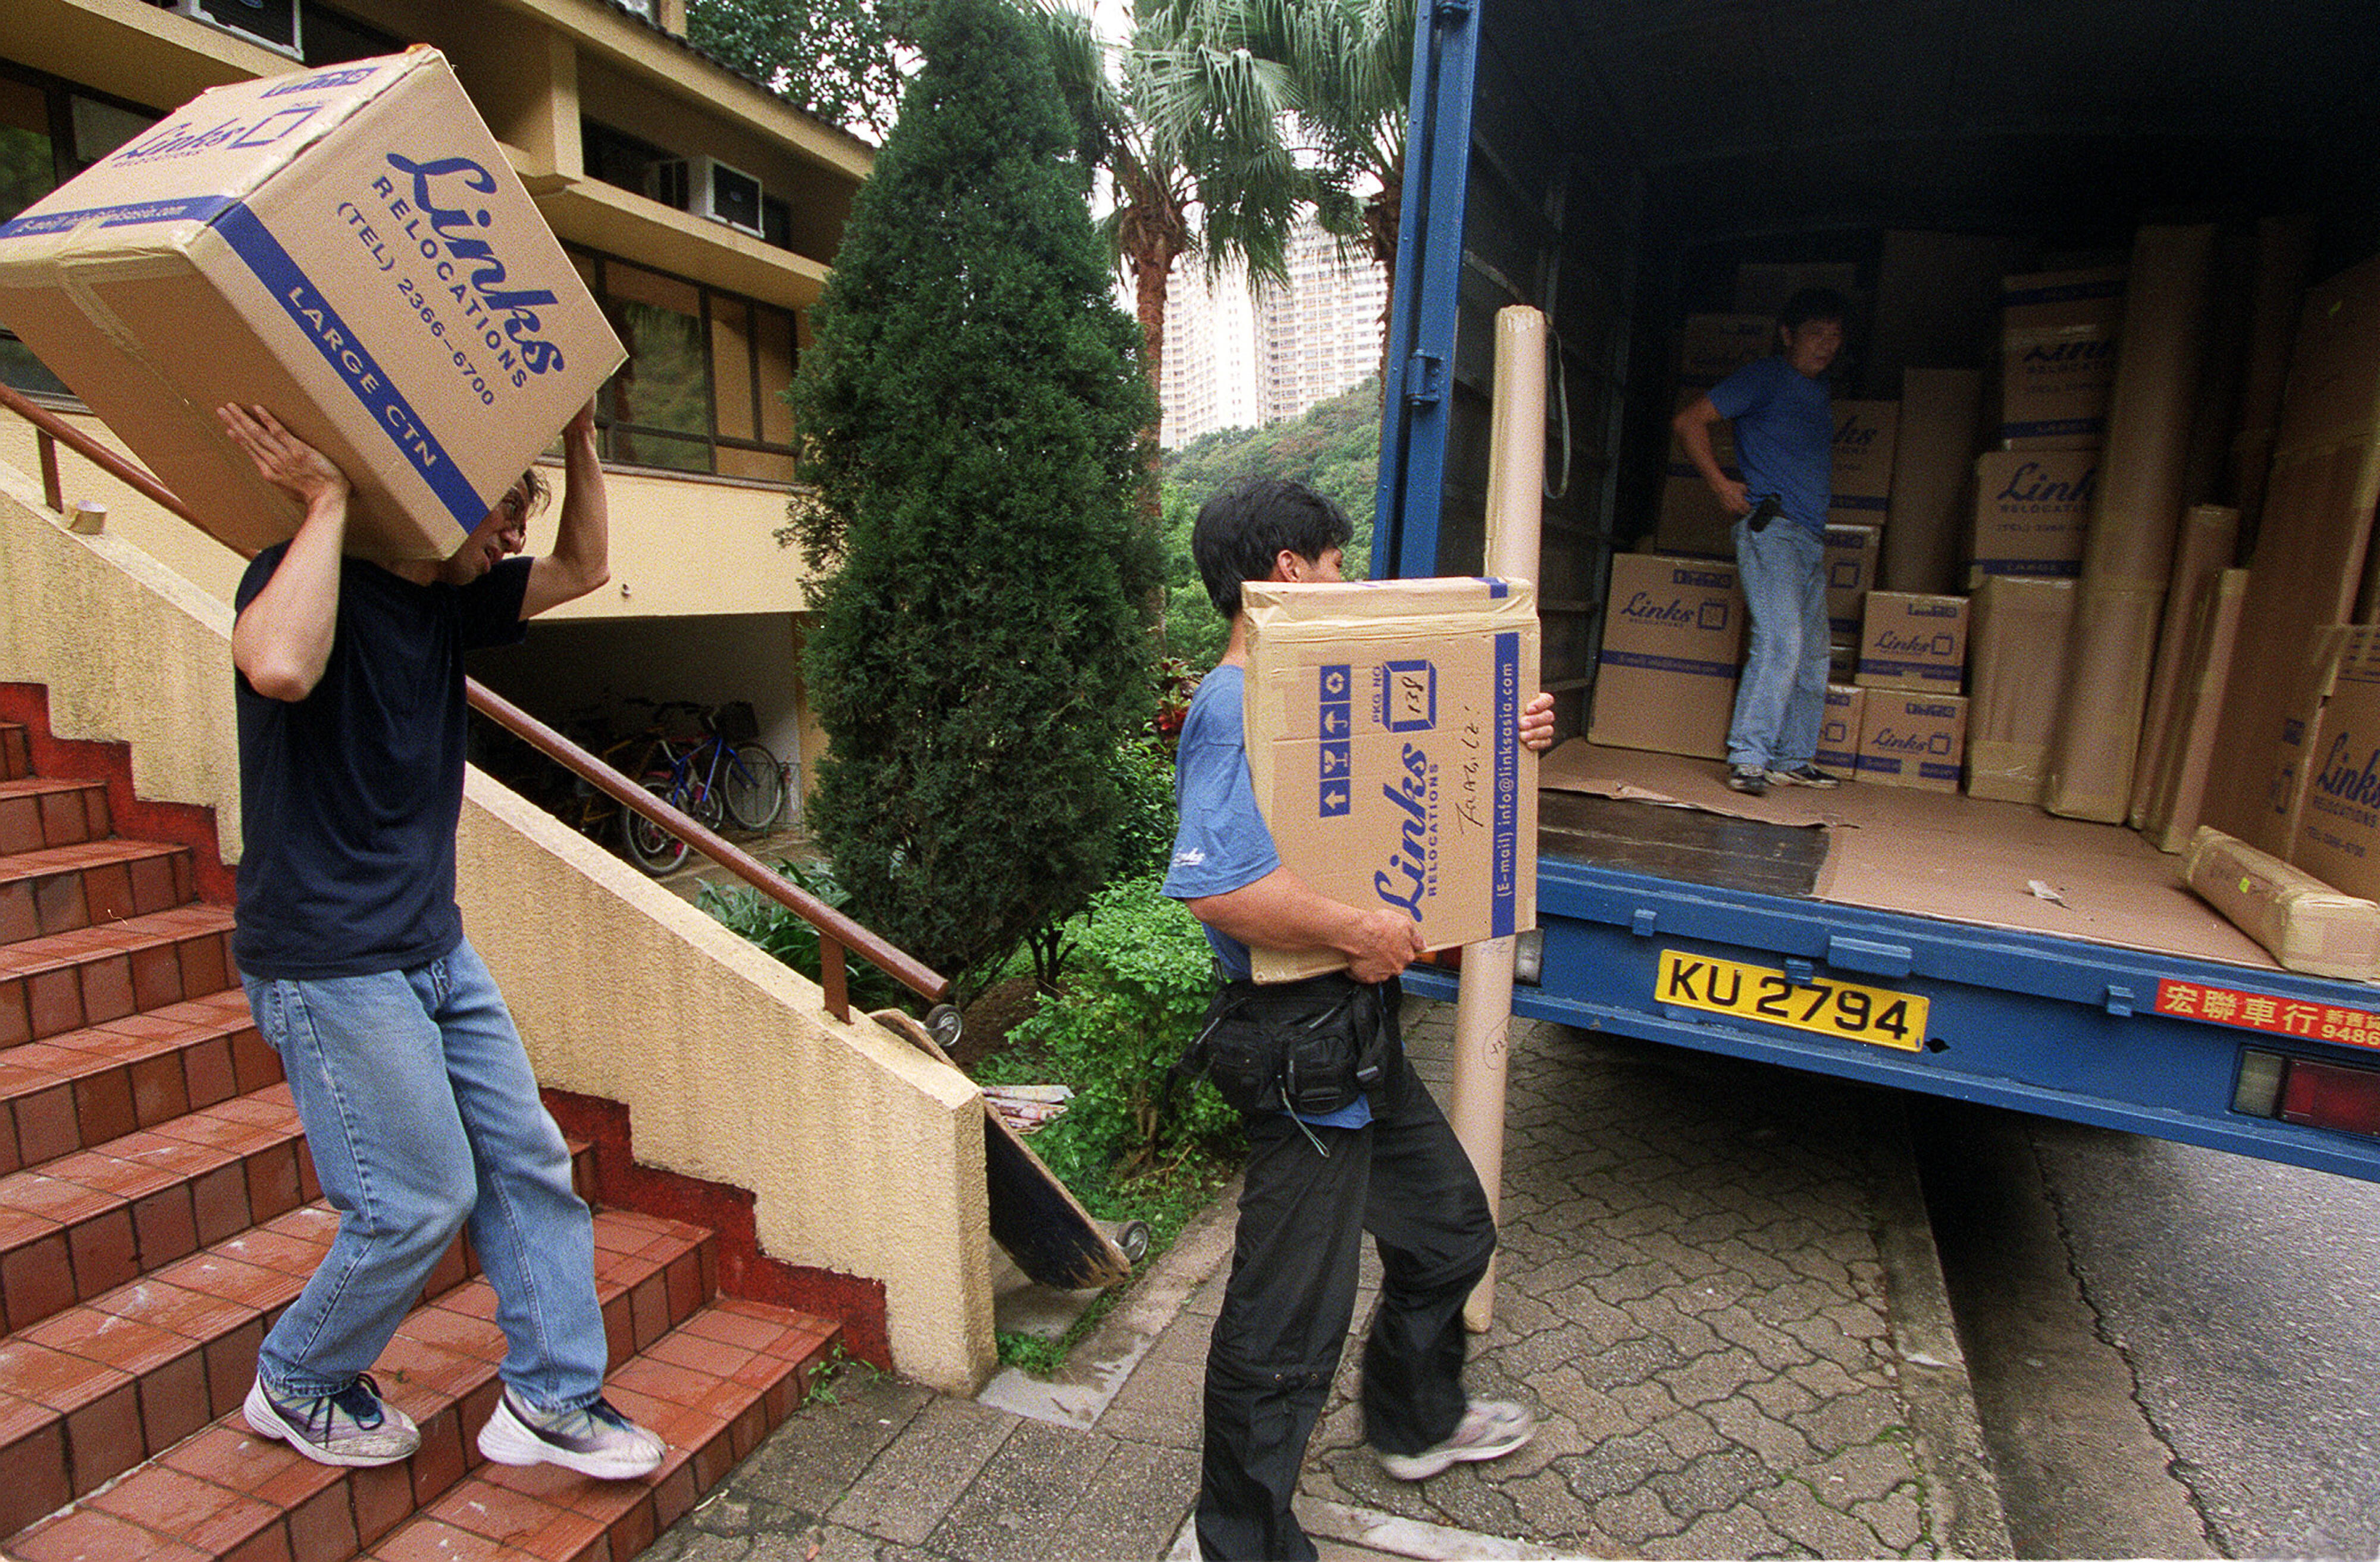 001-cnet-finance-mortgage-moving-boxes